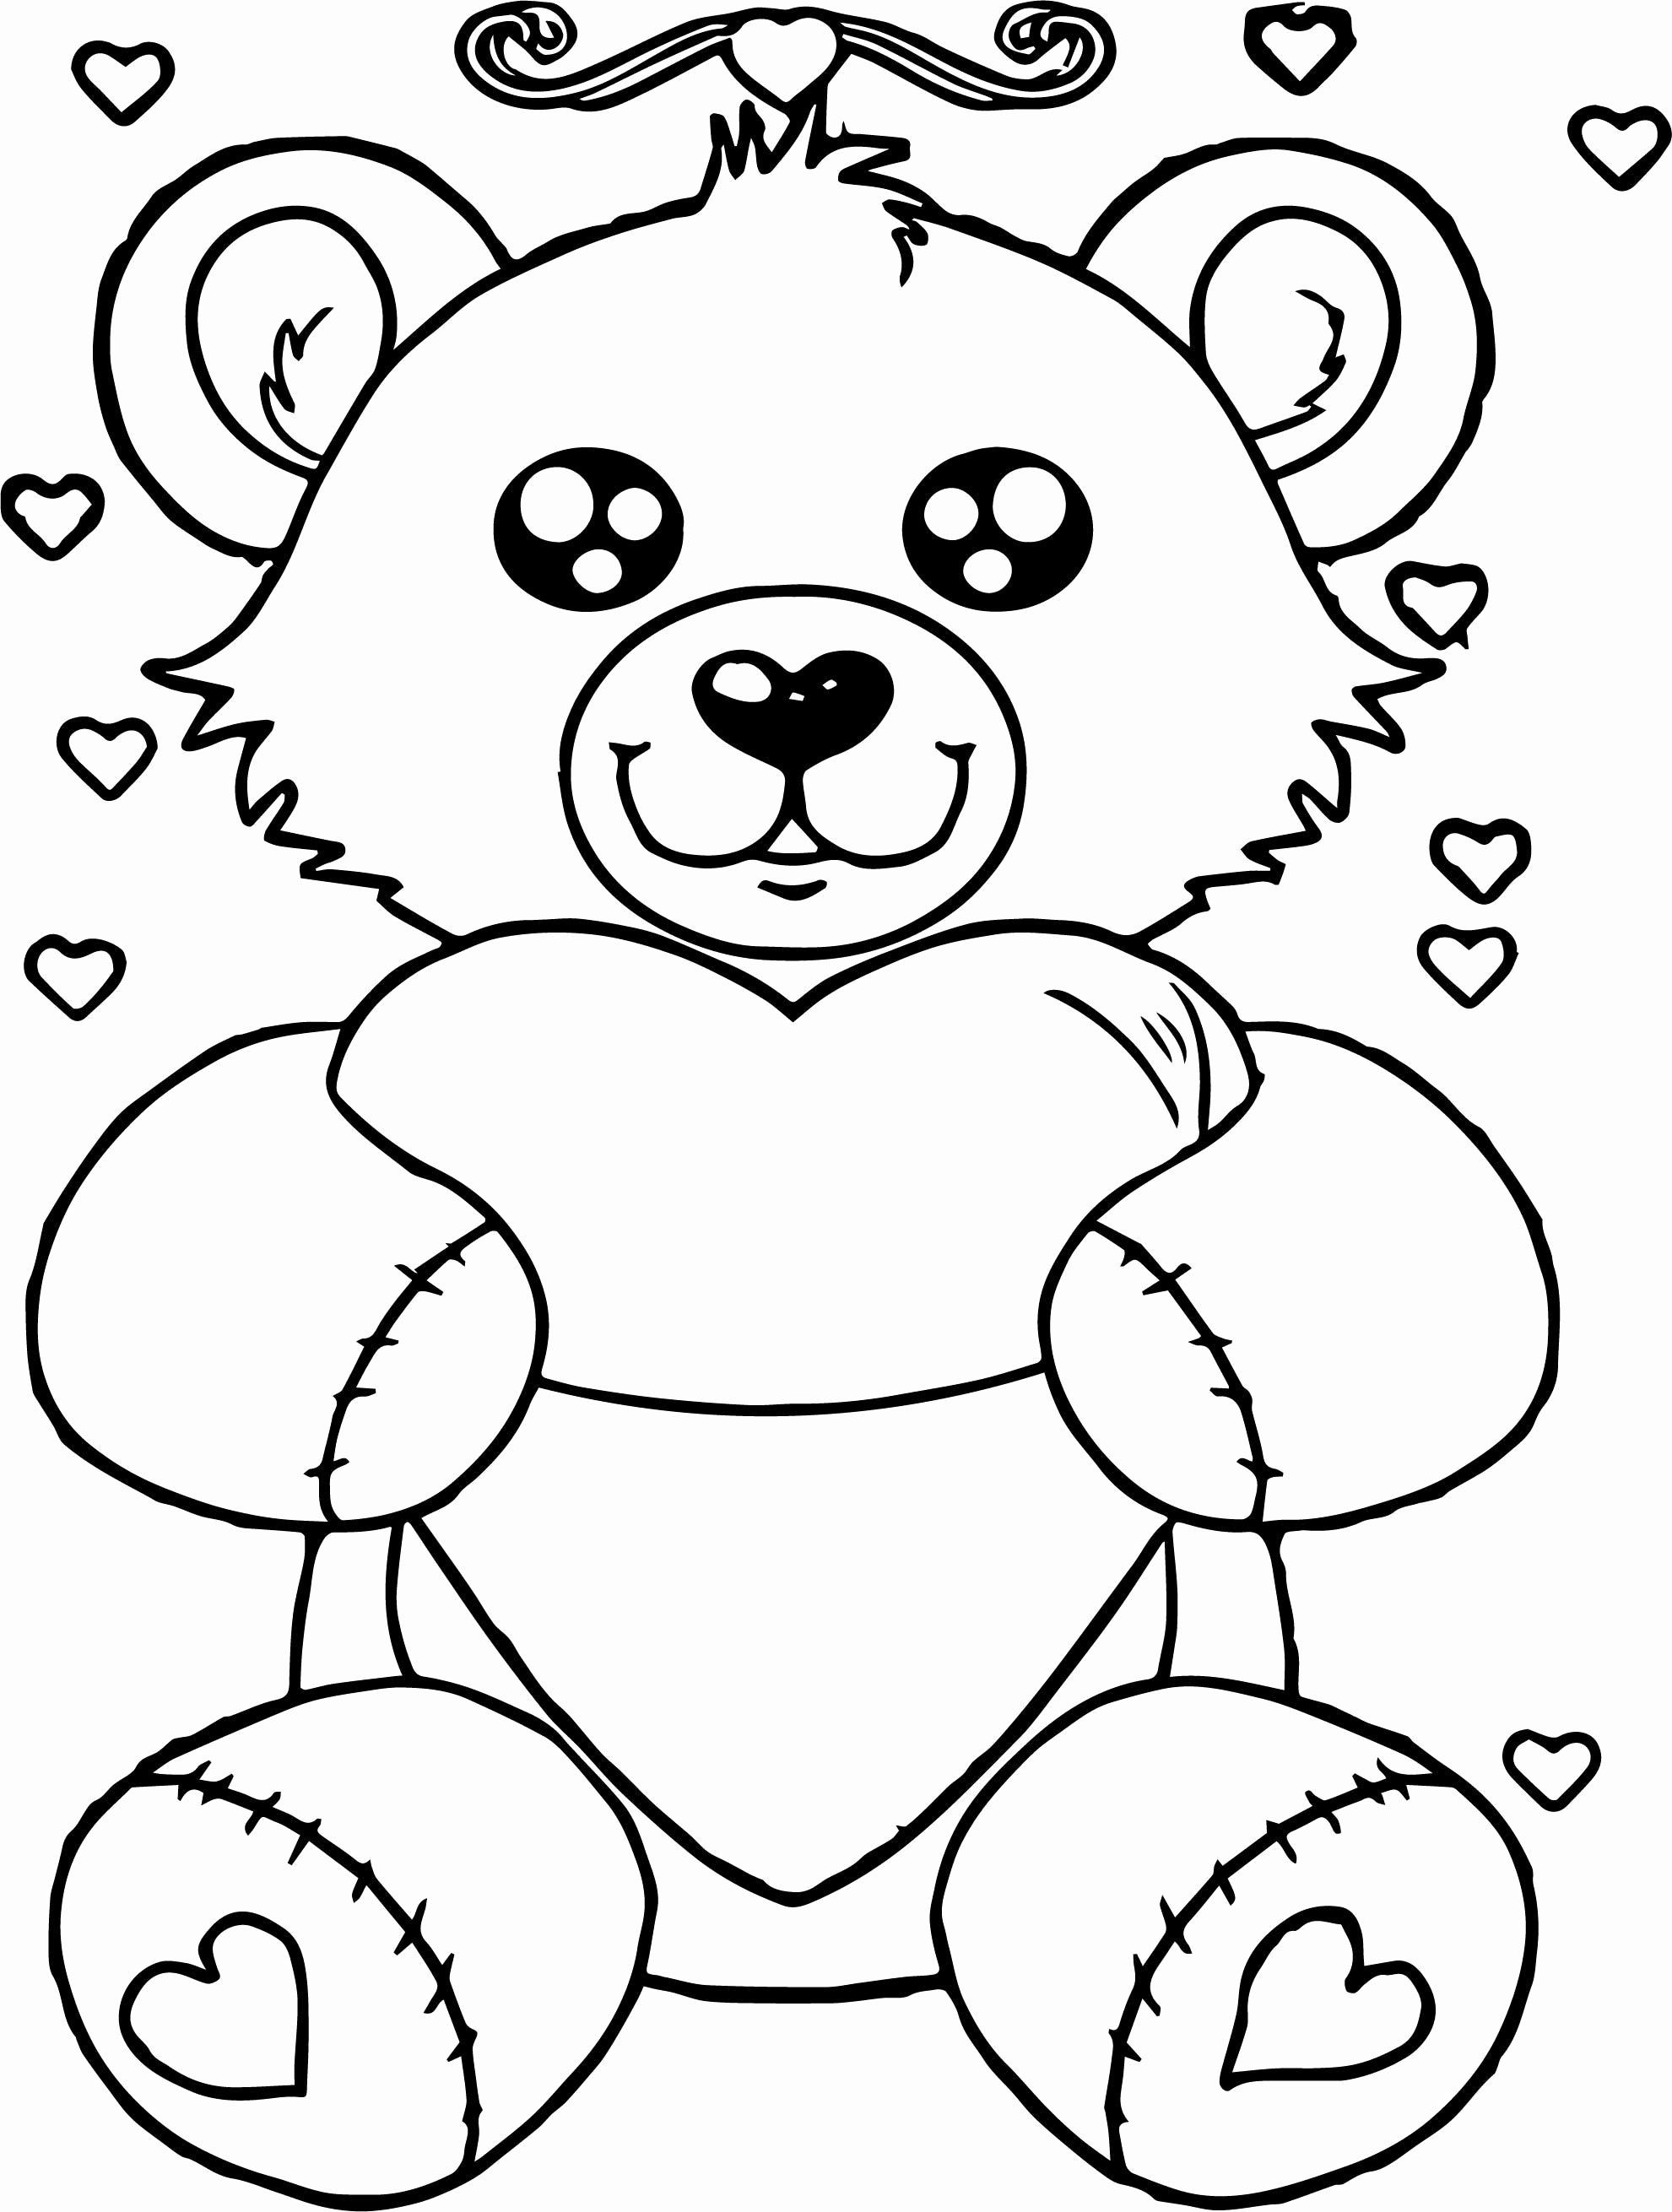 Rainbow Heart Coloring Page Di 2020